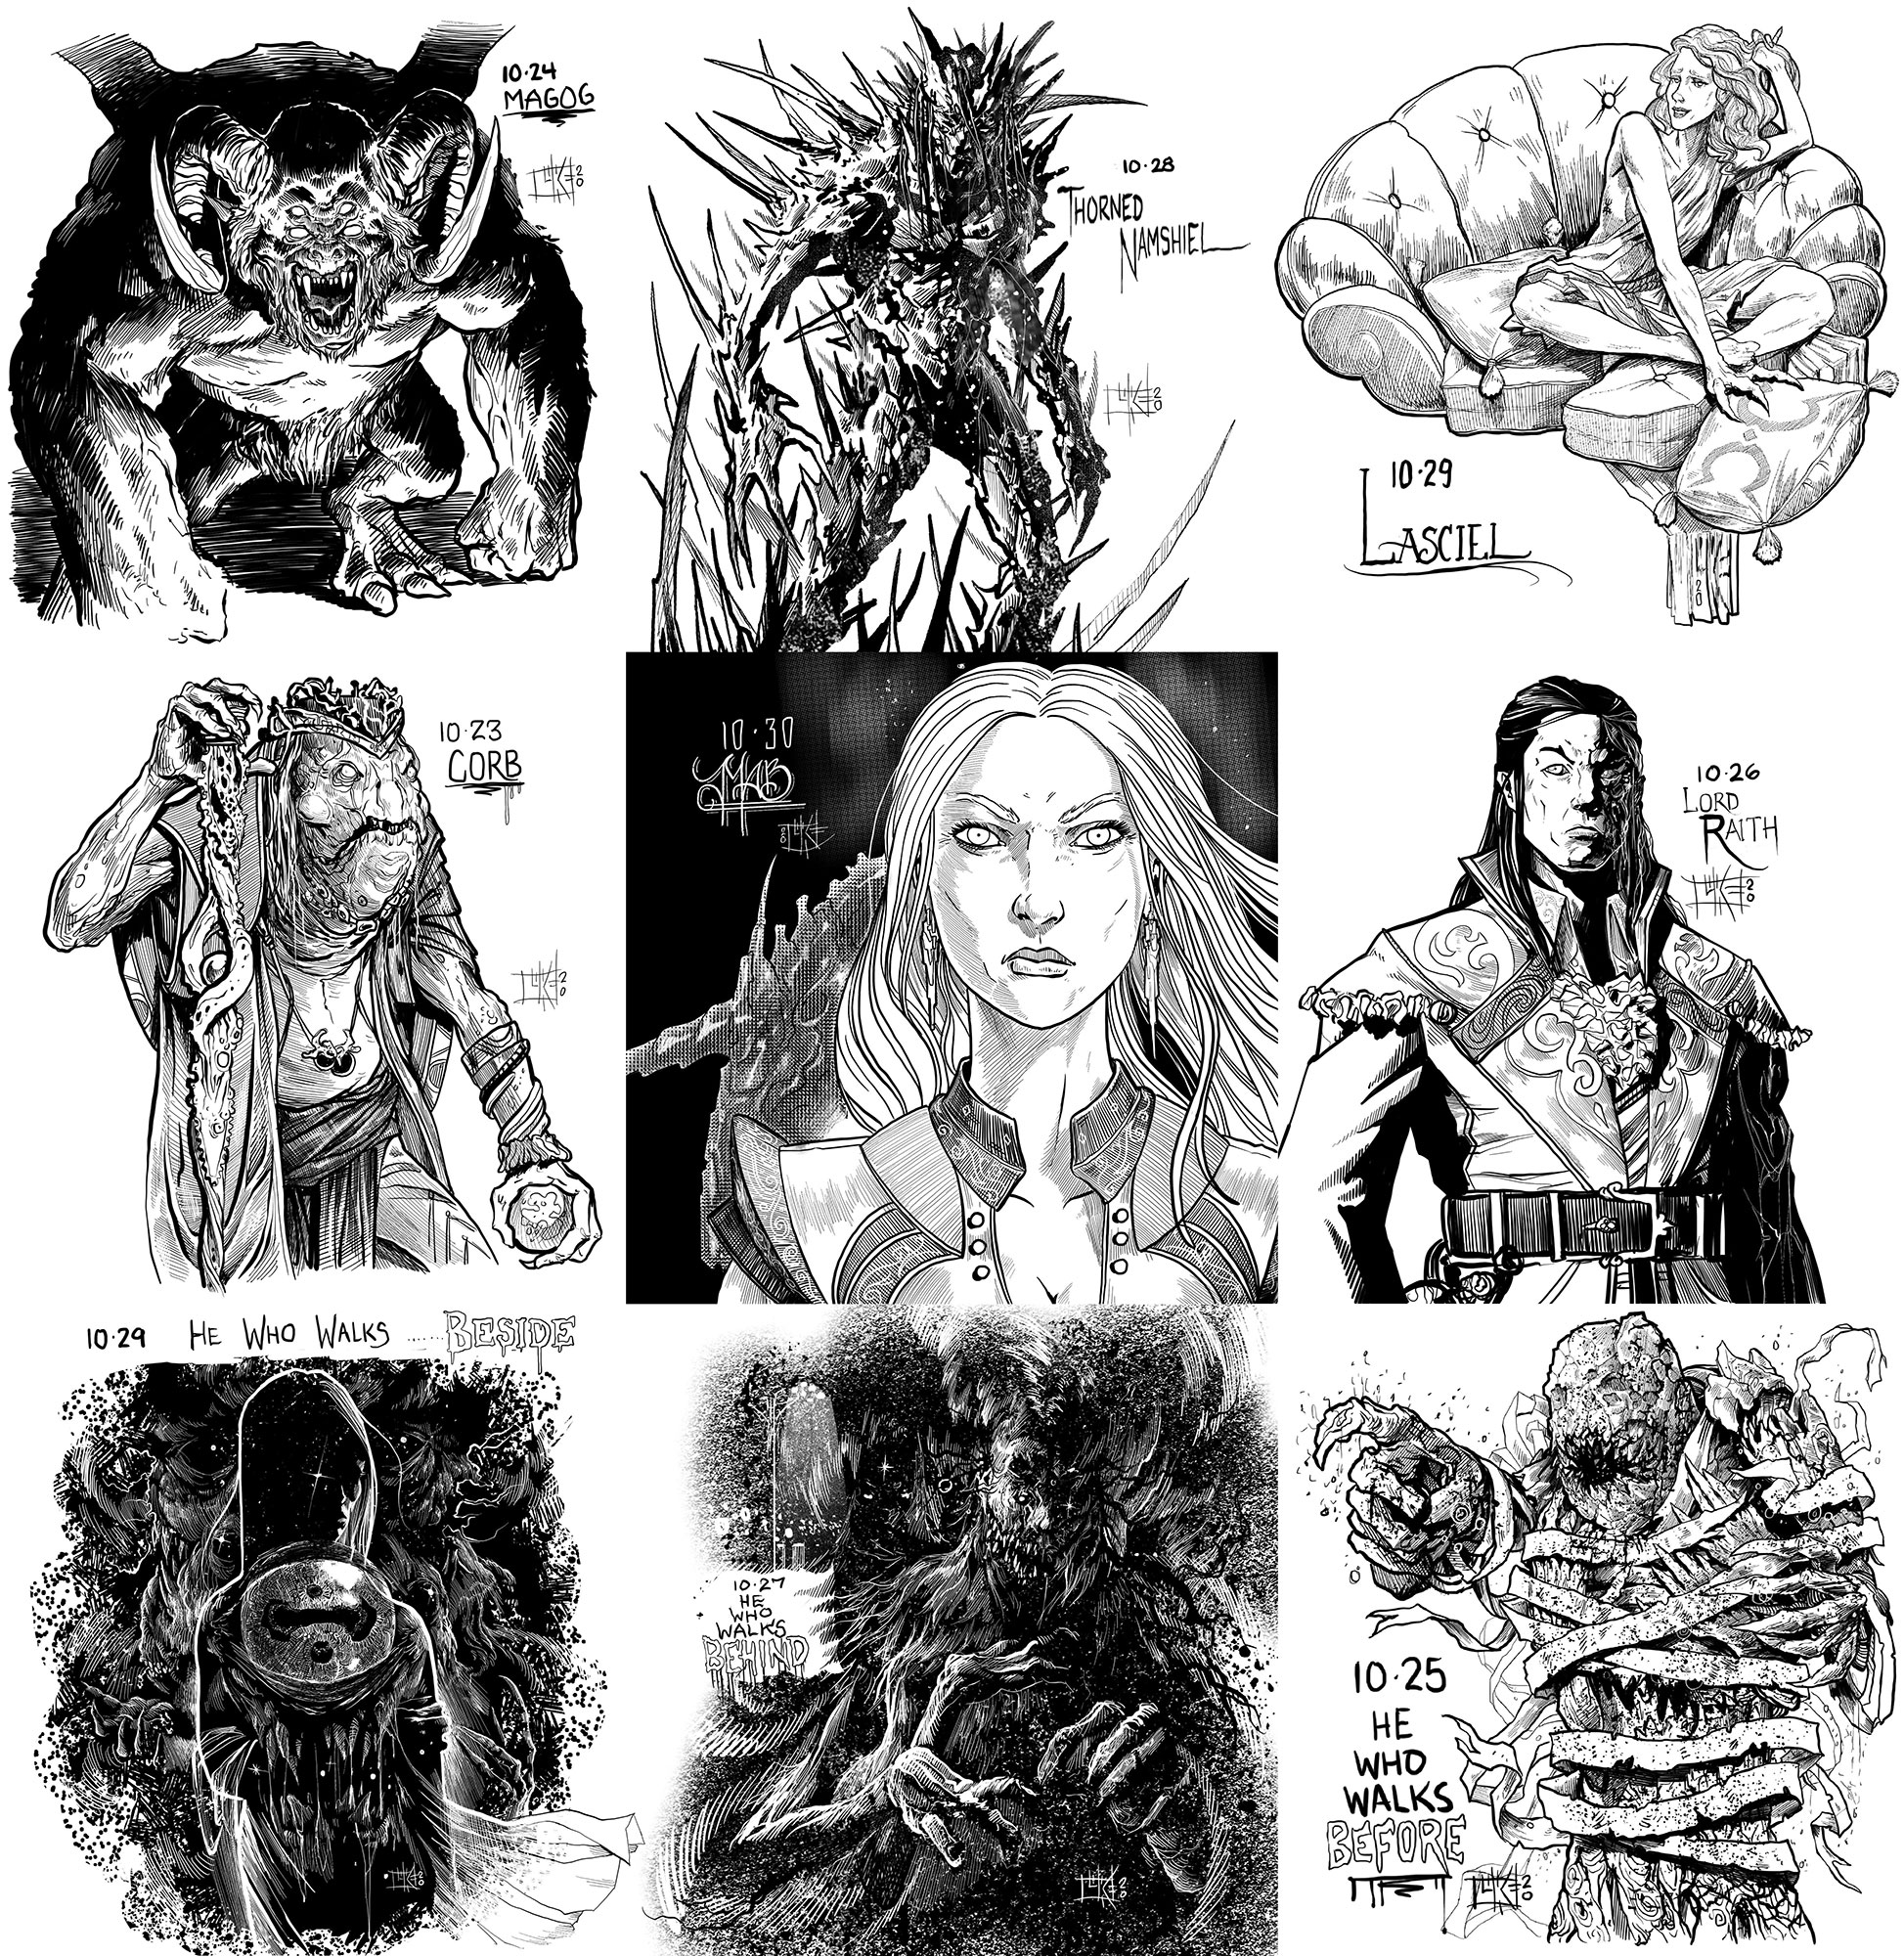 Collage of images by Luke Schroder for Inktober: Magog, Thorned Namshiel, Lasciel, King Corb, Mab, Lord Raith, and He Who Walks Beside, Behind, and Before